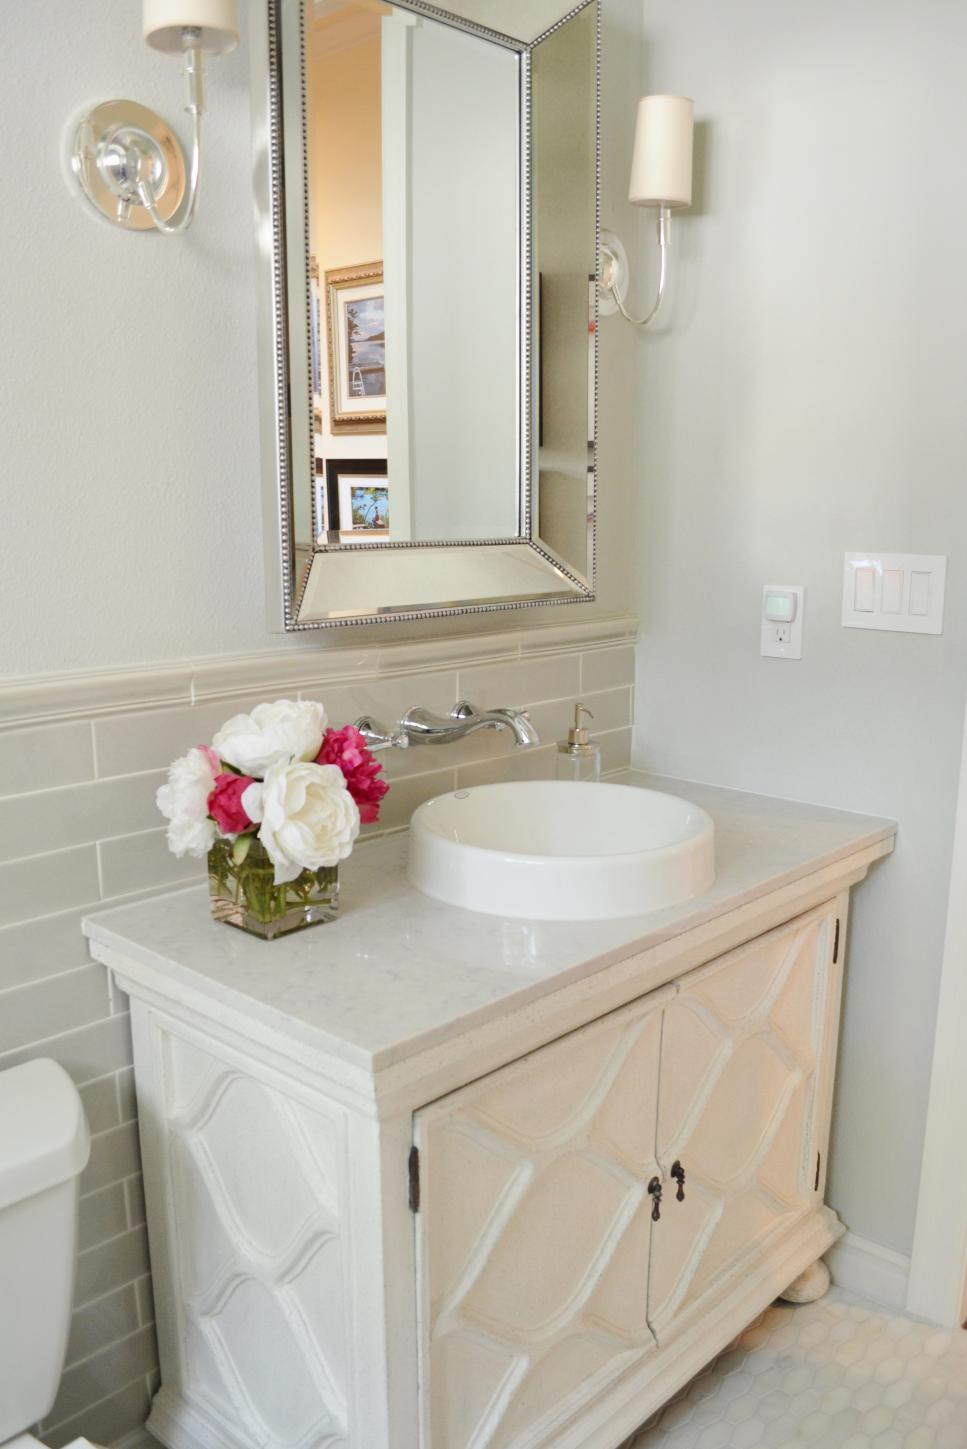 before-and-after bathroom remodels on a budget | hgtv FXBNYEH